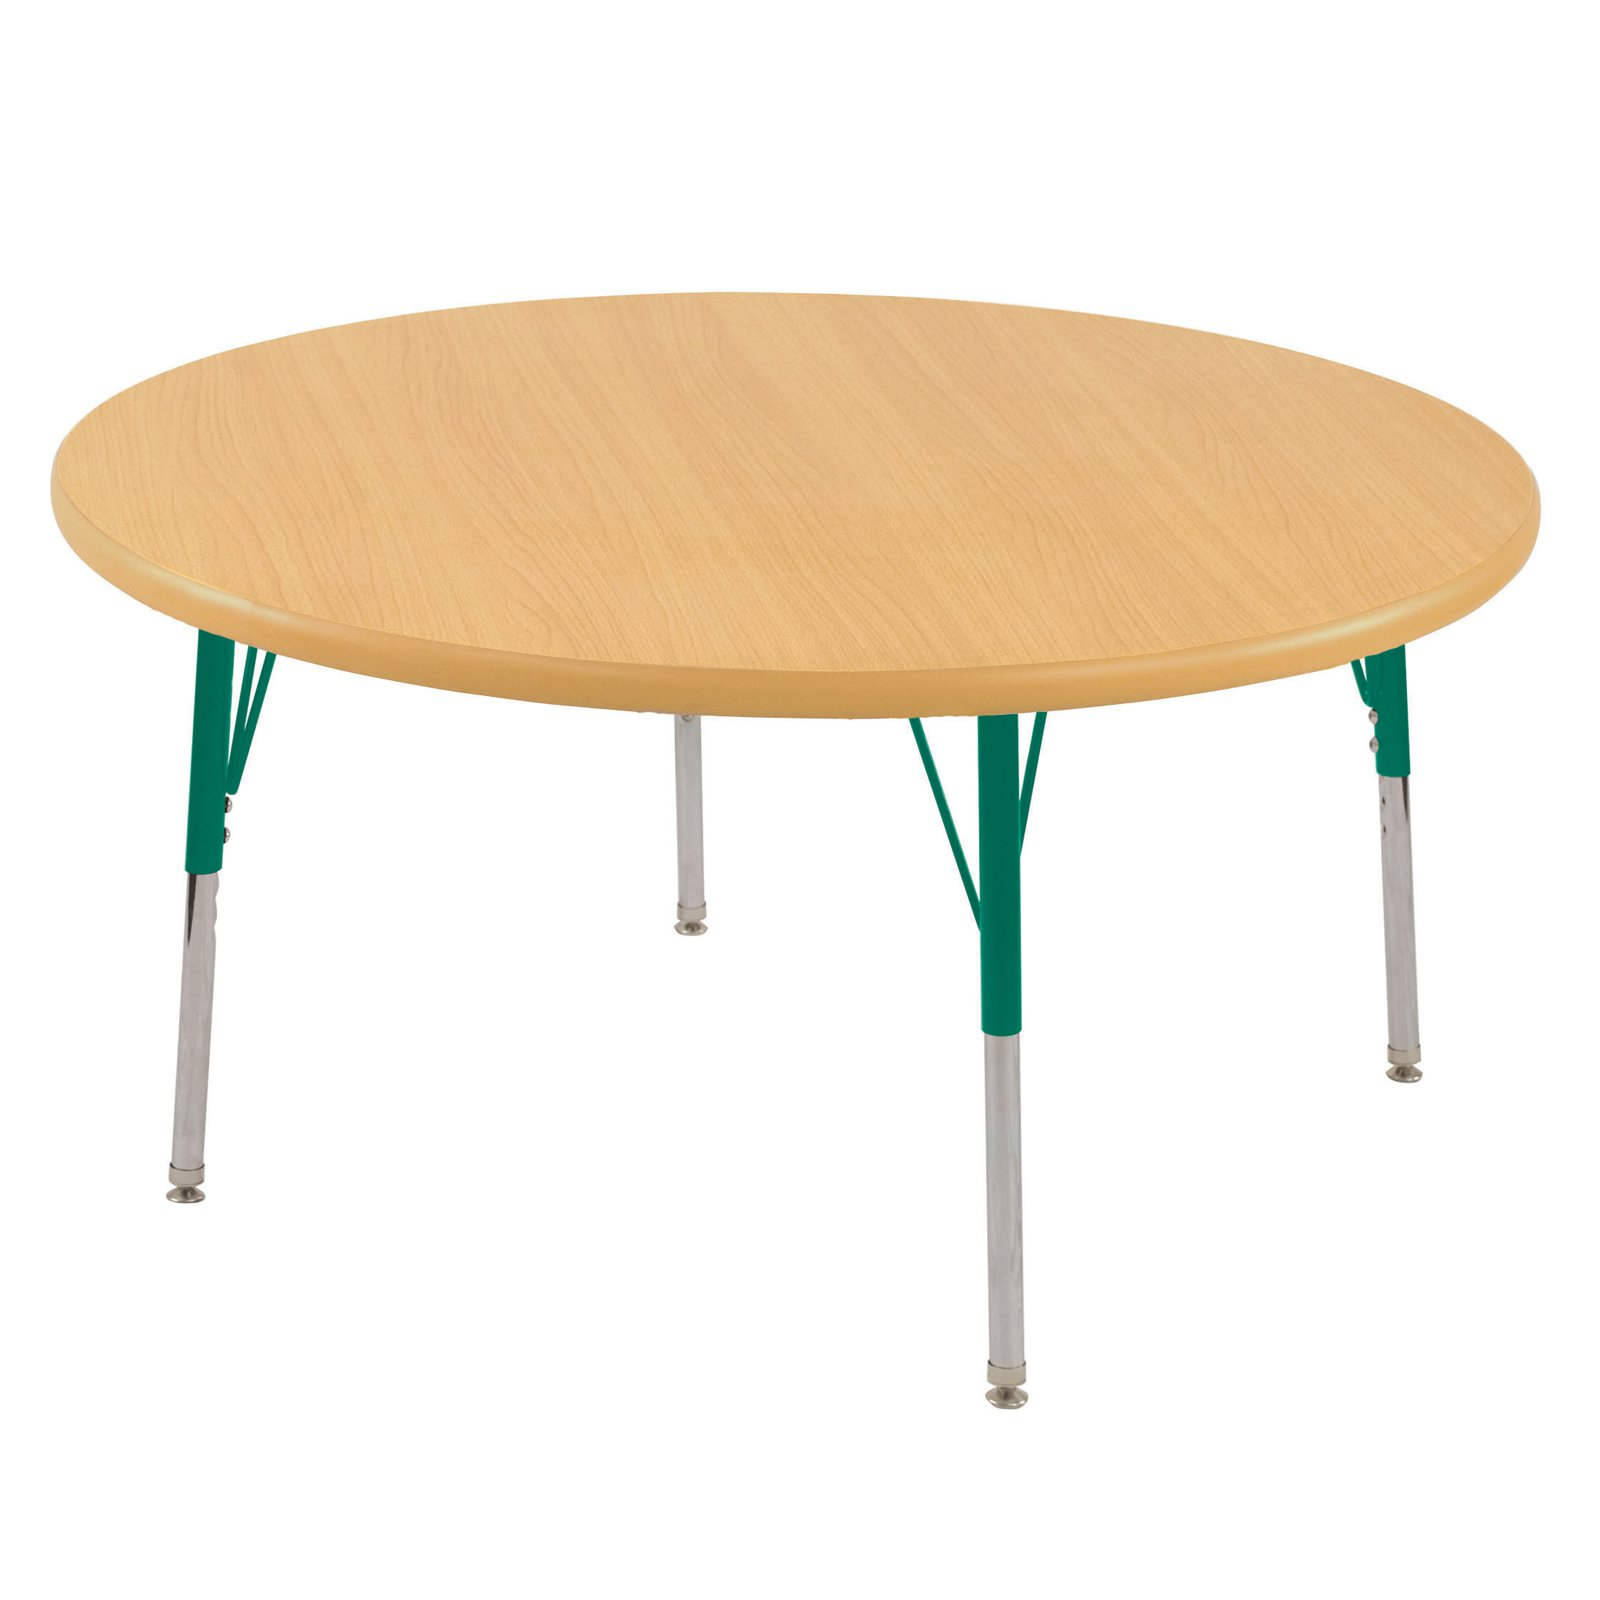 ECR4KIDS Maple Round Adjustable Activity Table with Maple Edge - Standard Legs - 36 in.